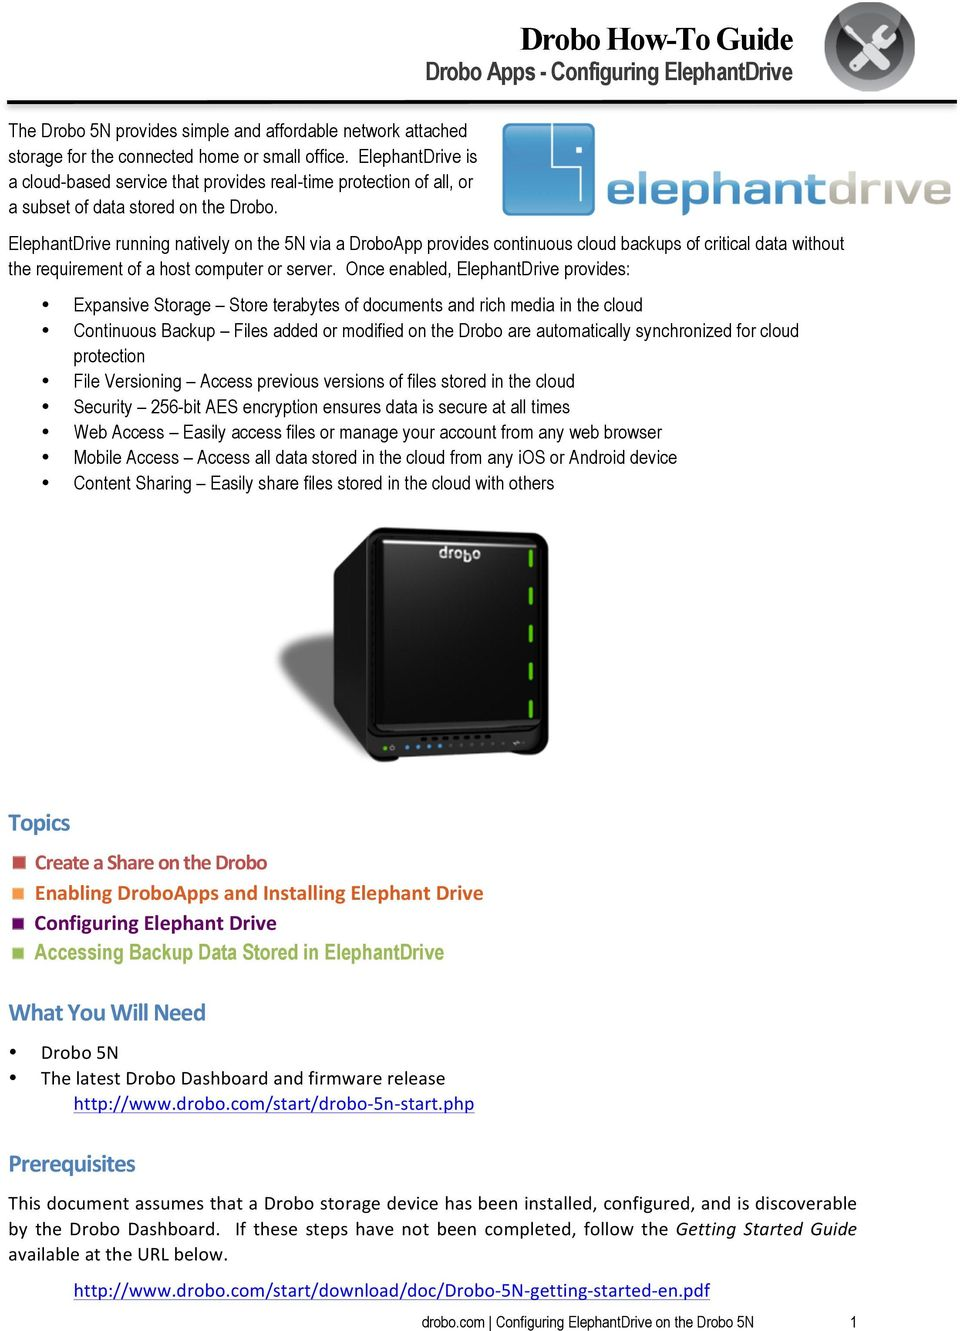 ElephantDrive running natively on the 5N via a DroboApp provides continuous cloud backups of critical data without the requirement of a host computer or server.